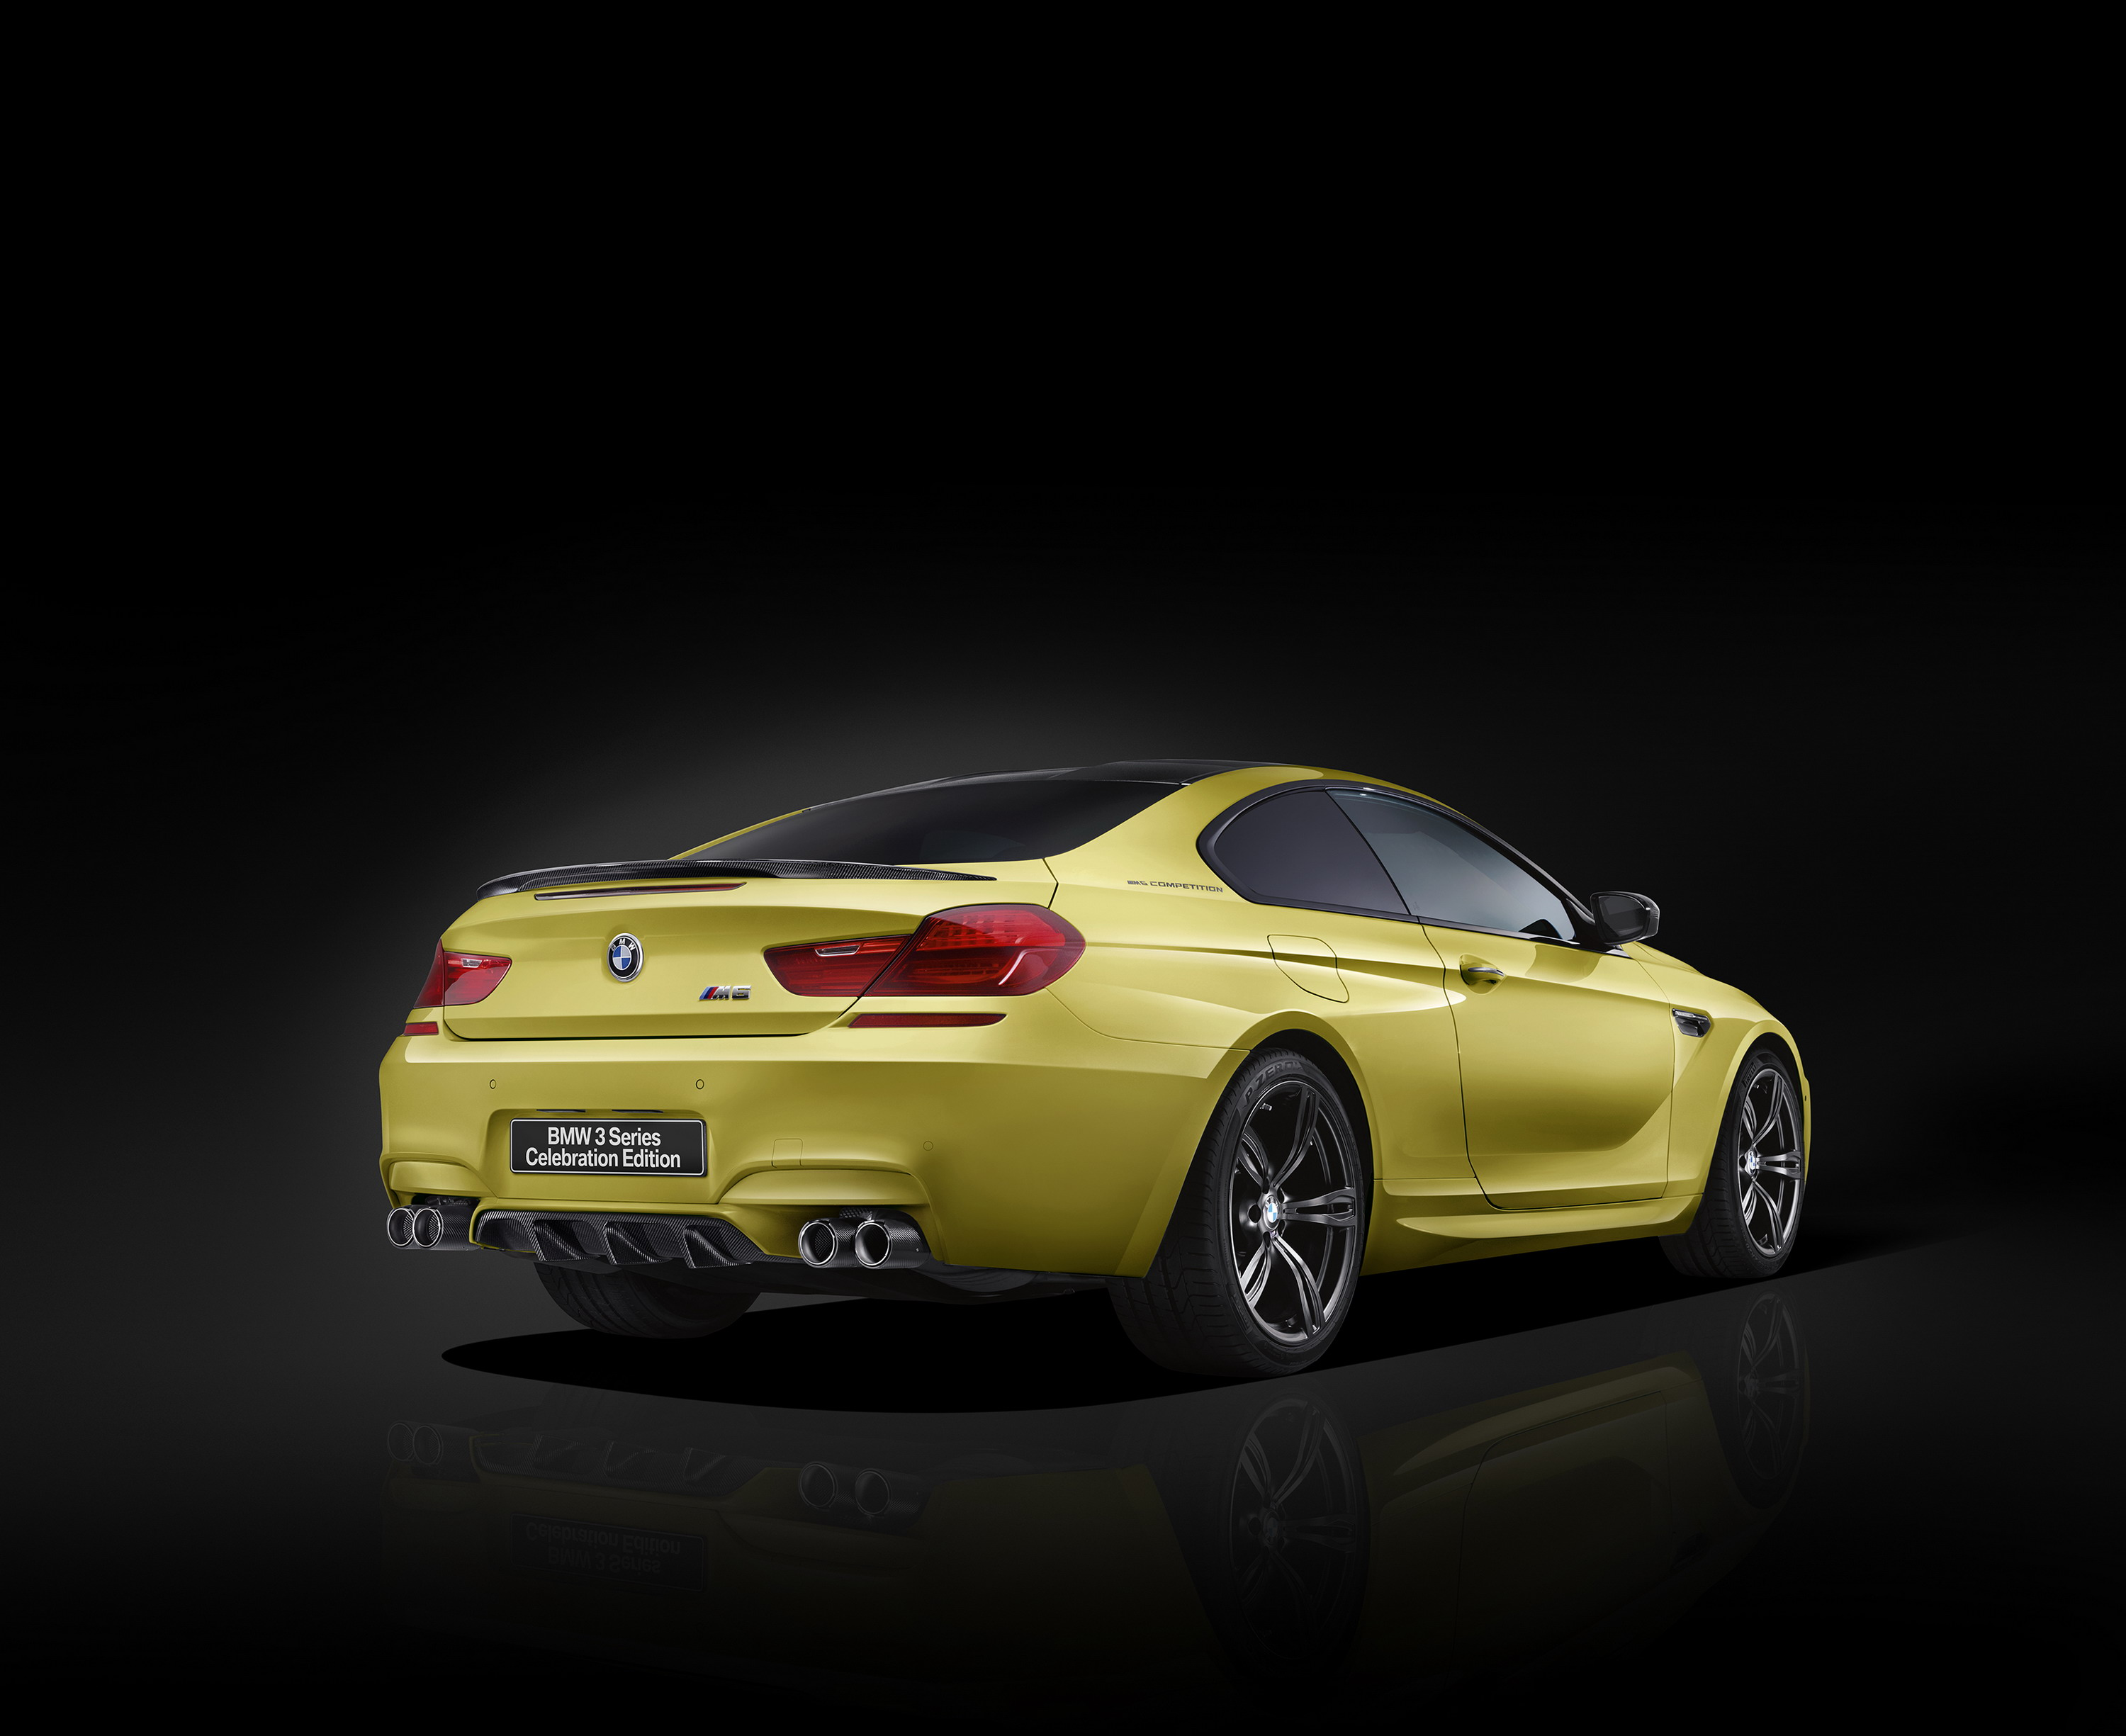 2016 BMW M6 Celebration Edition Competition | Top Speed